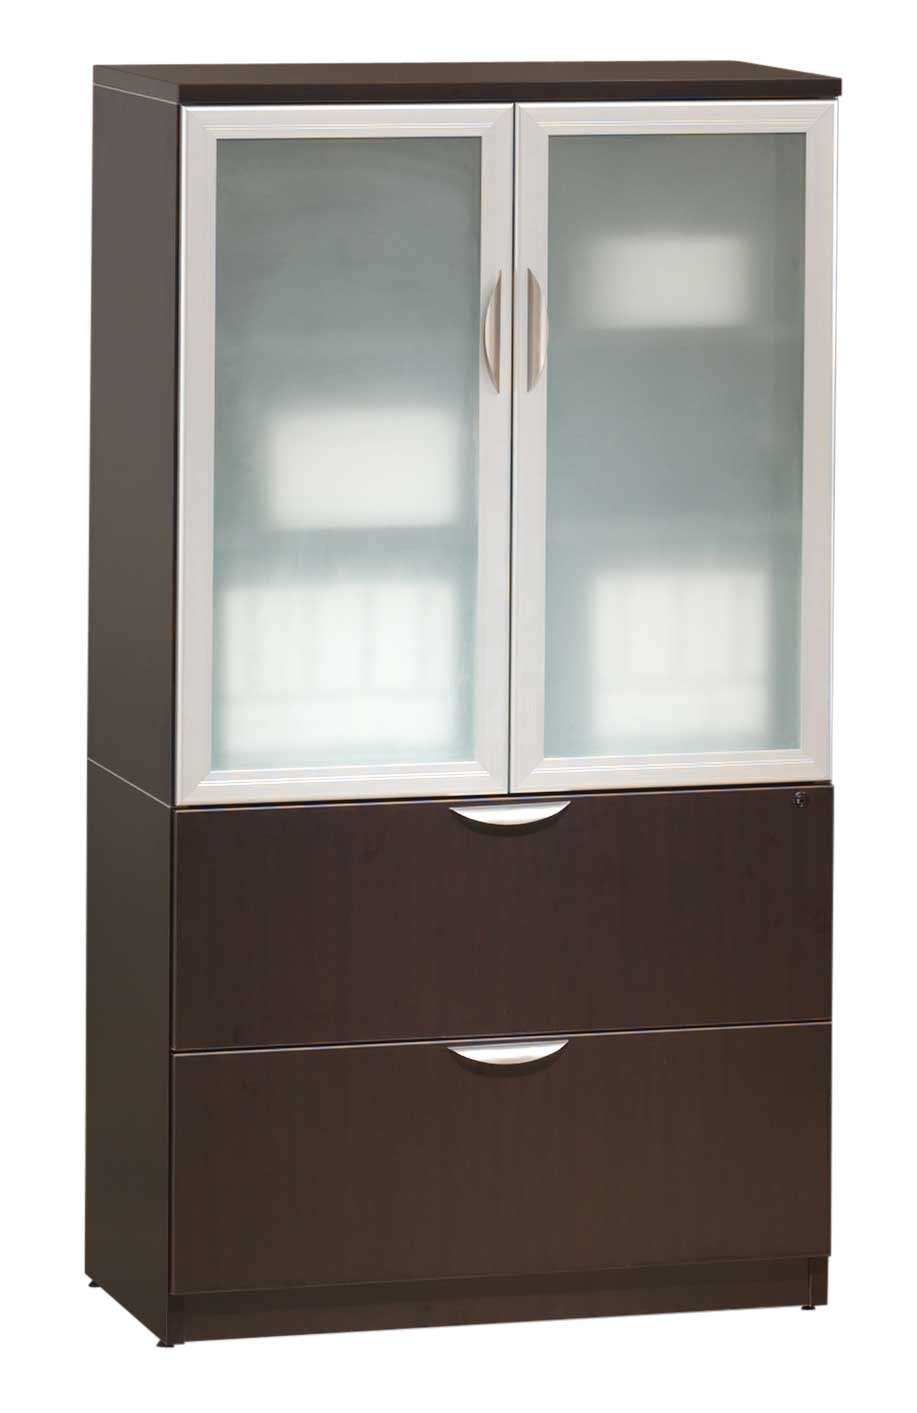 Dark Wooden Storage Cabinet With Glass Doors And Drawers